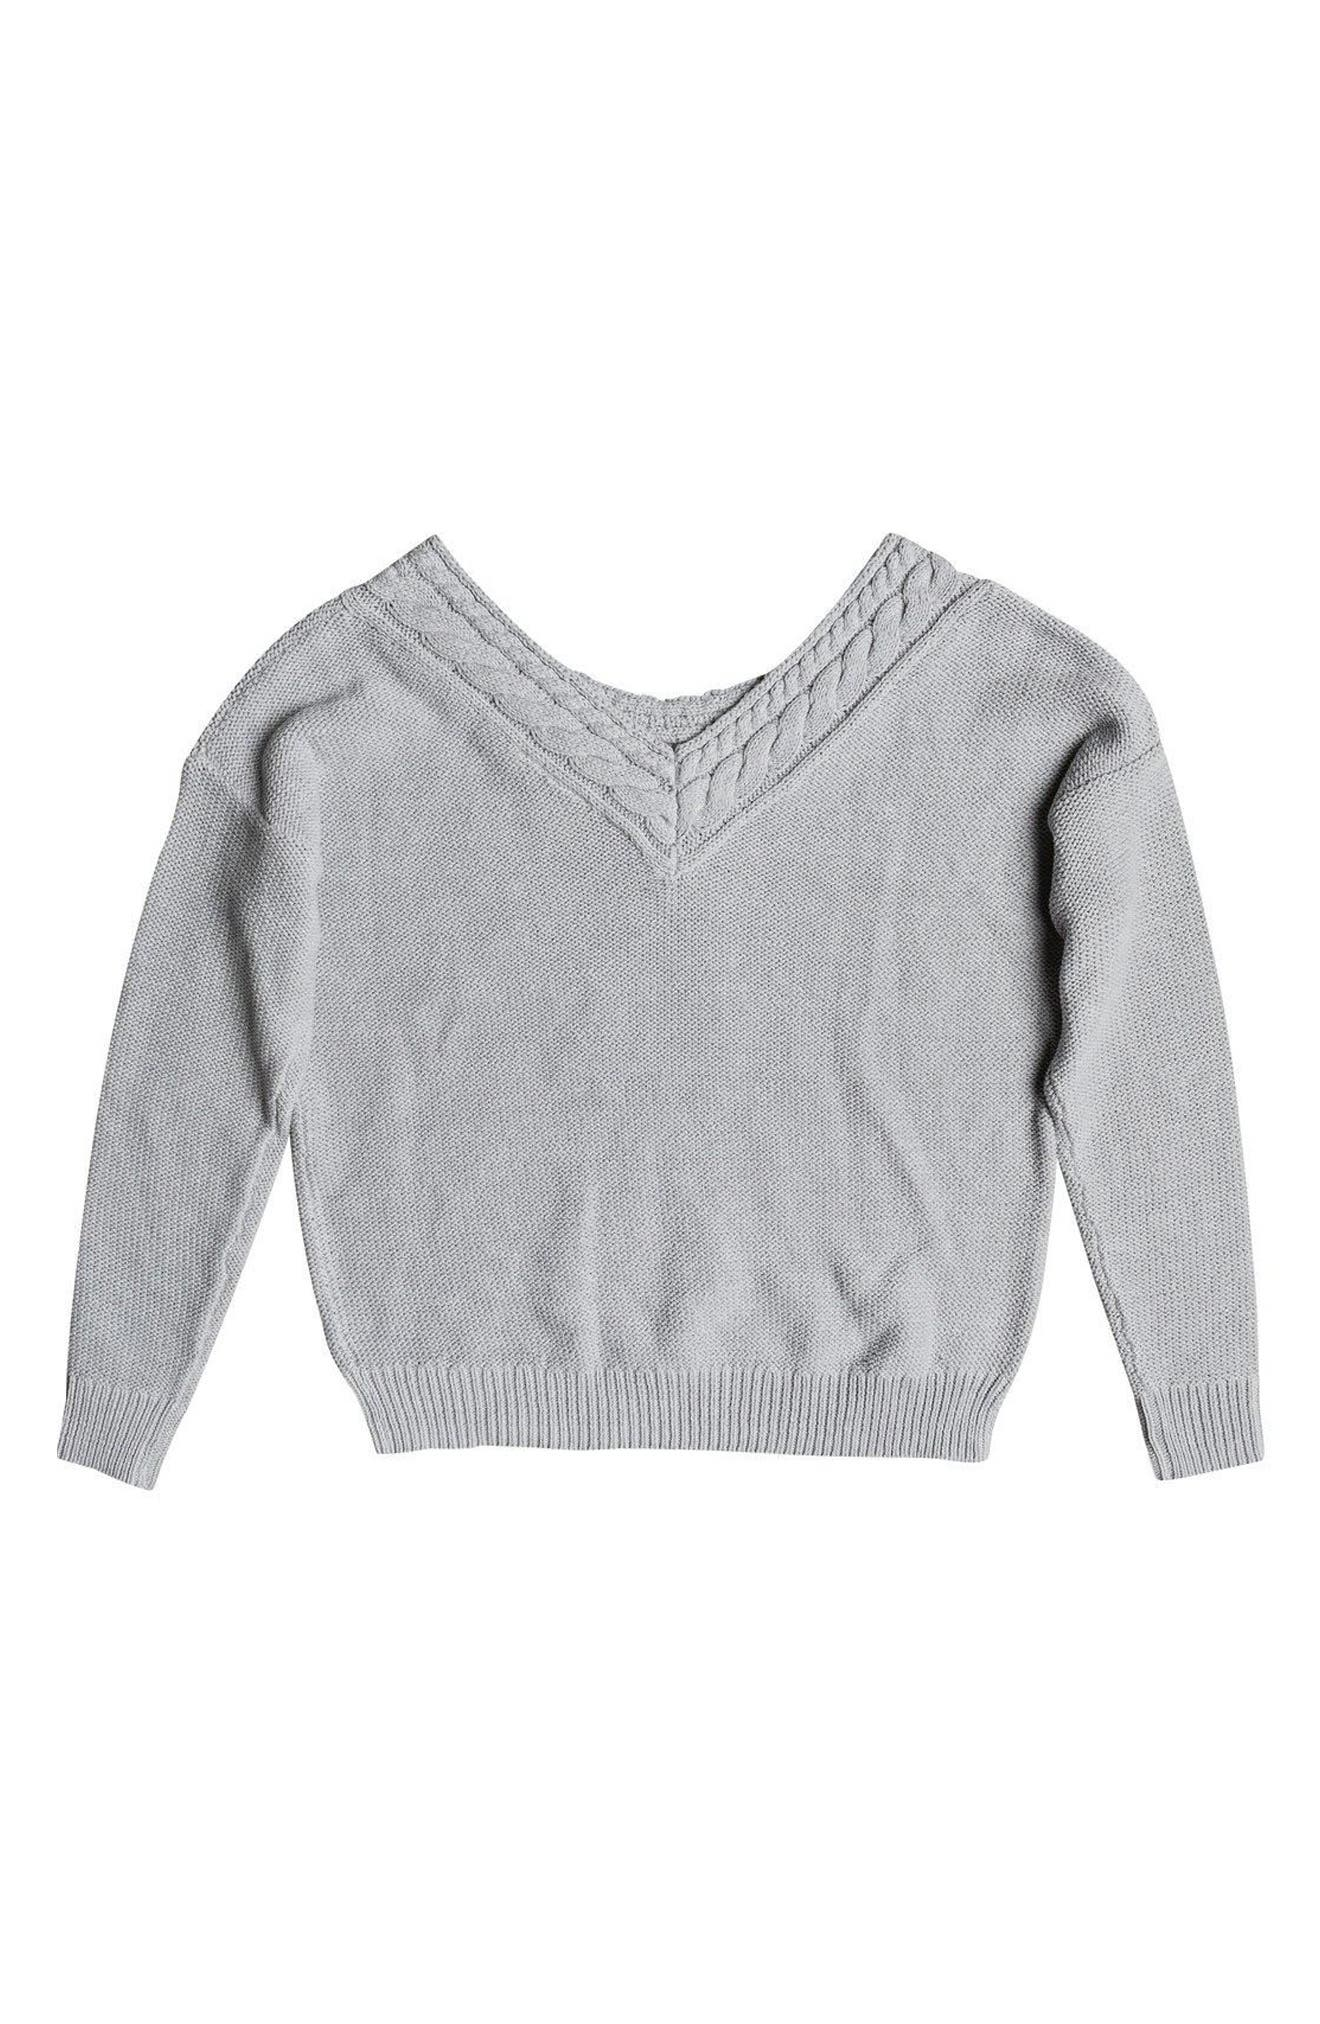 ROXY,                             Choose to Shine Sweater,                             Alternate thumbnail 3, color,                             037